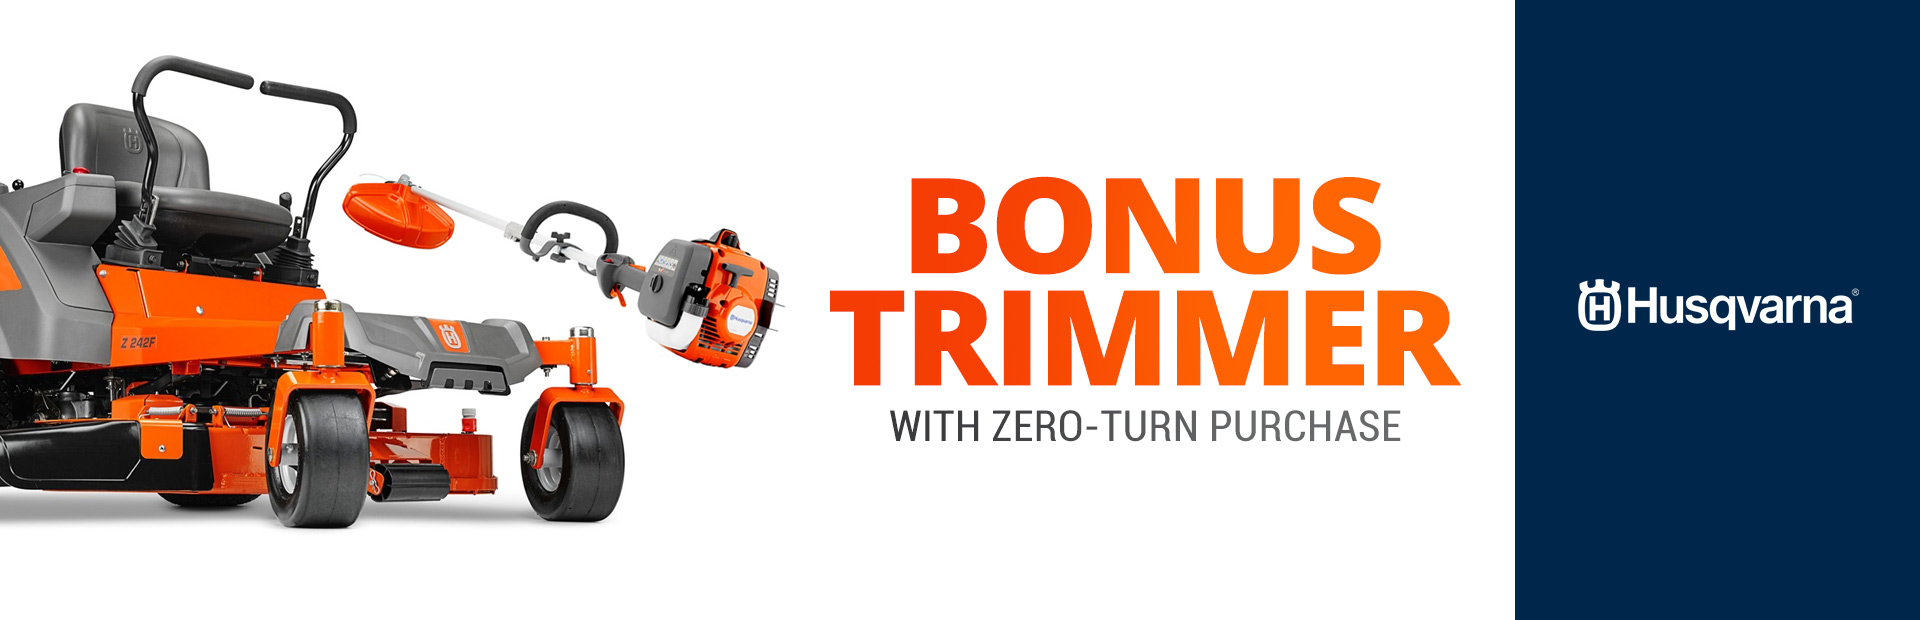 Husqvarna: Bonus Trimmer With Zero-Turn Purchase